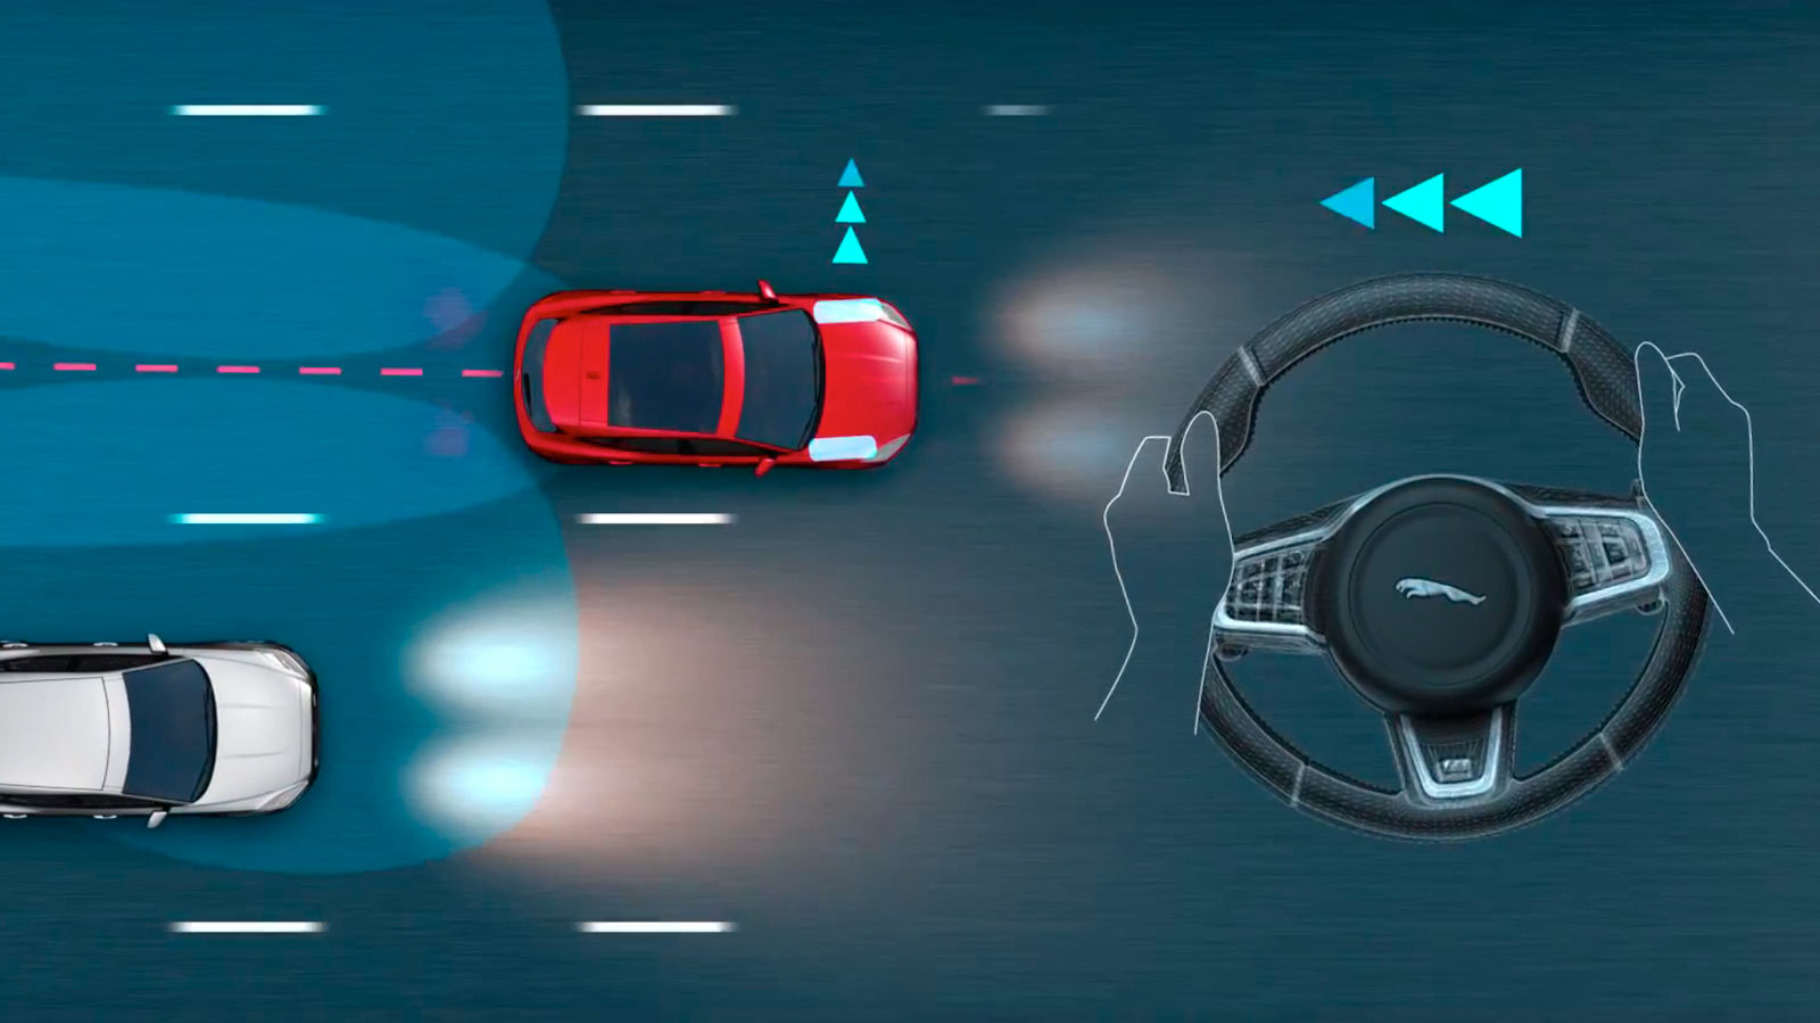 A diagram of the Jaguar E-Pace Blindspot Assist monitoring blind spots for any potential obstacles.